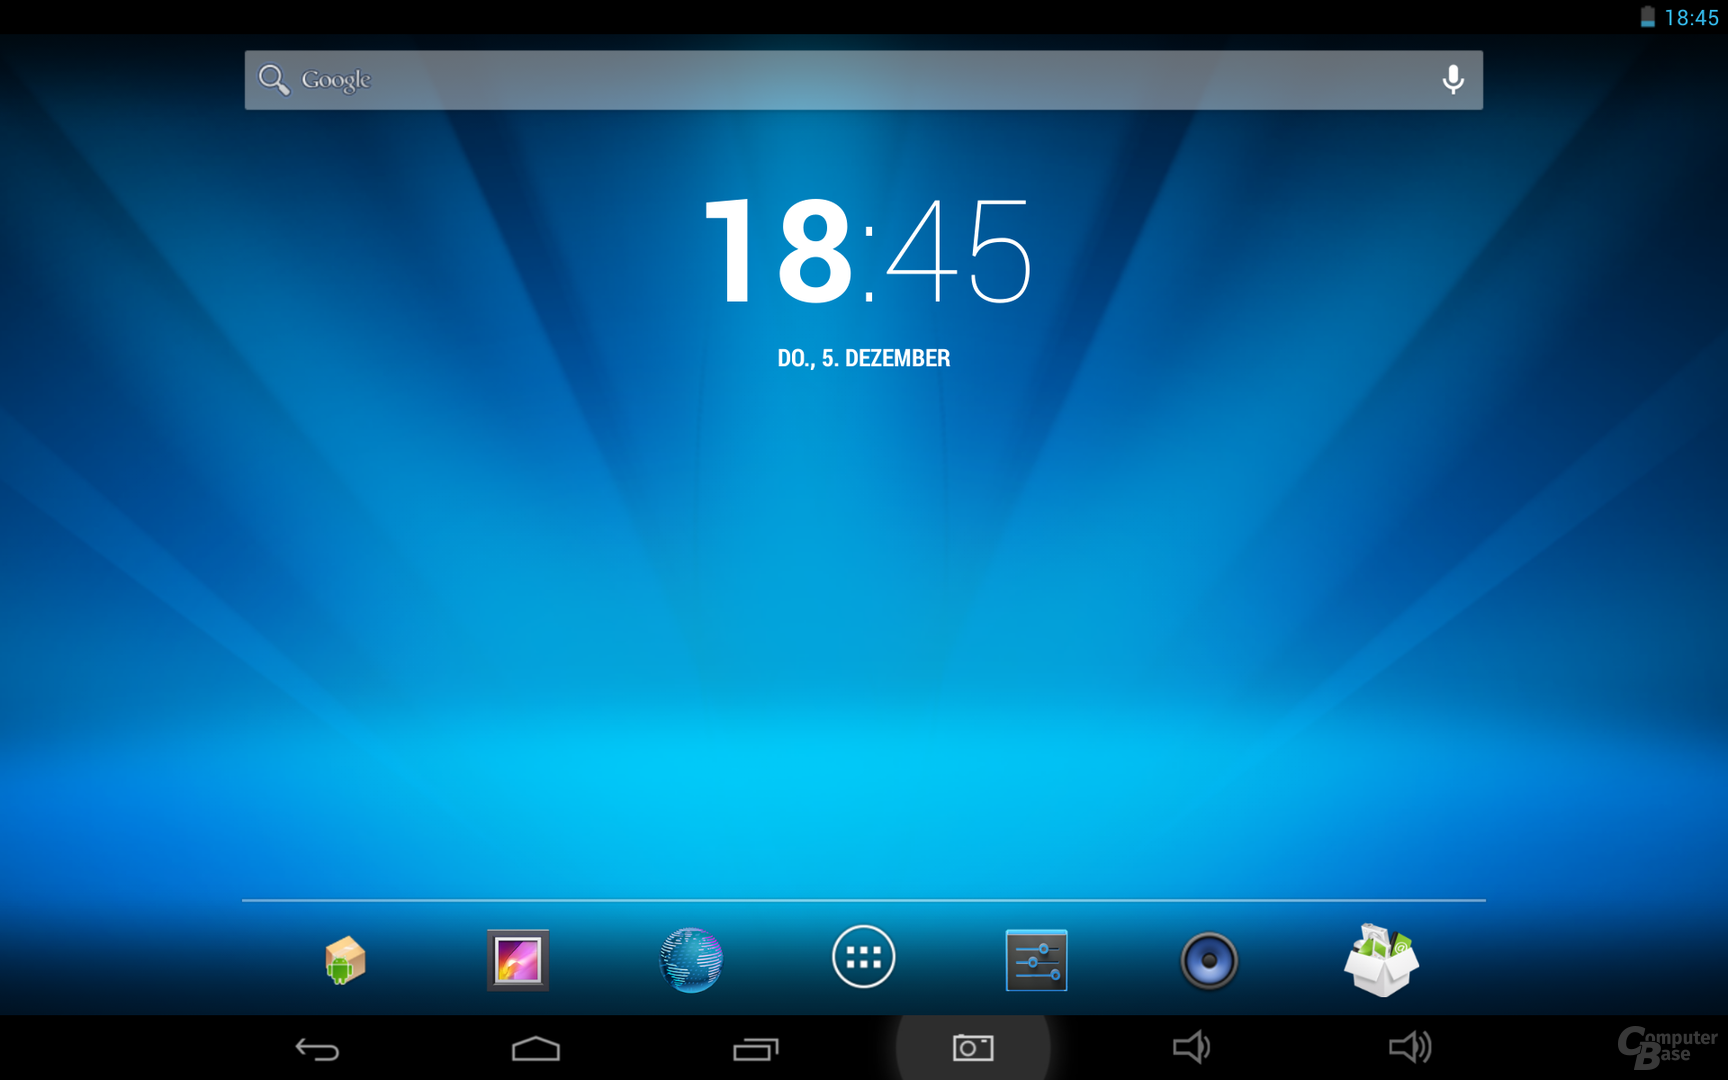 Captiva 10.1 Quad Full HD Homescreen